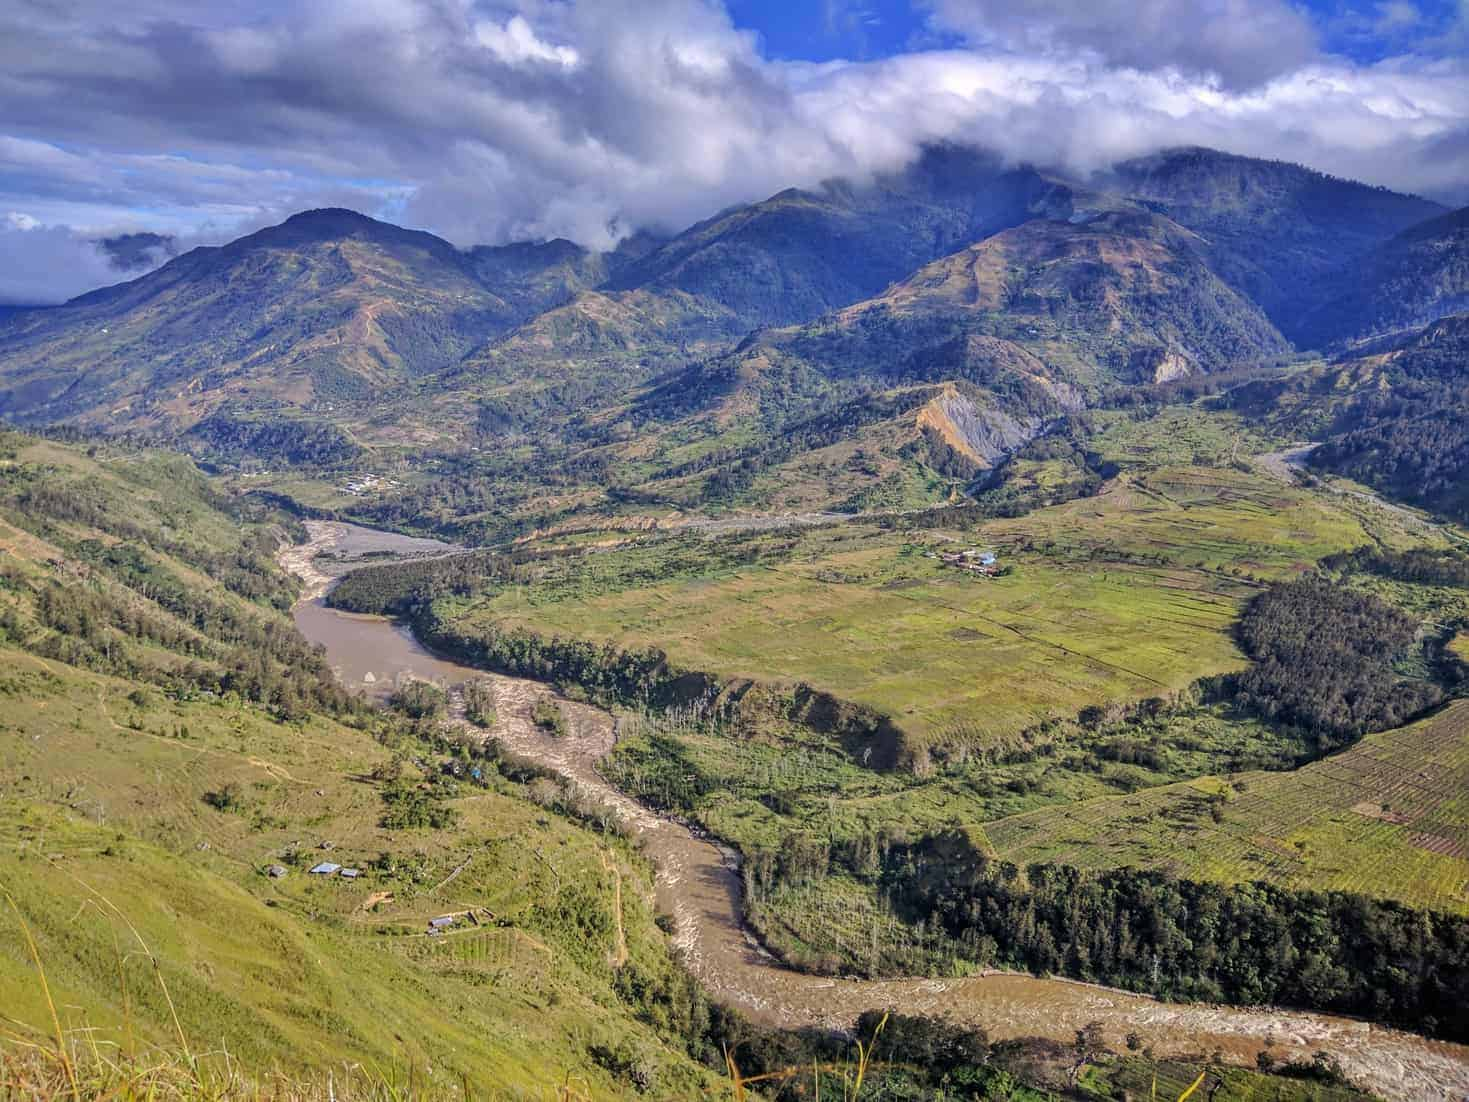 A panoramic view of Baliem Valley, Papua, Indonesia